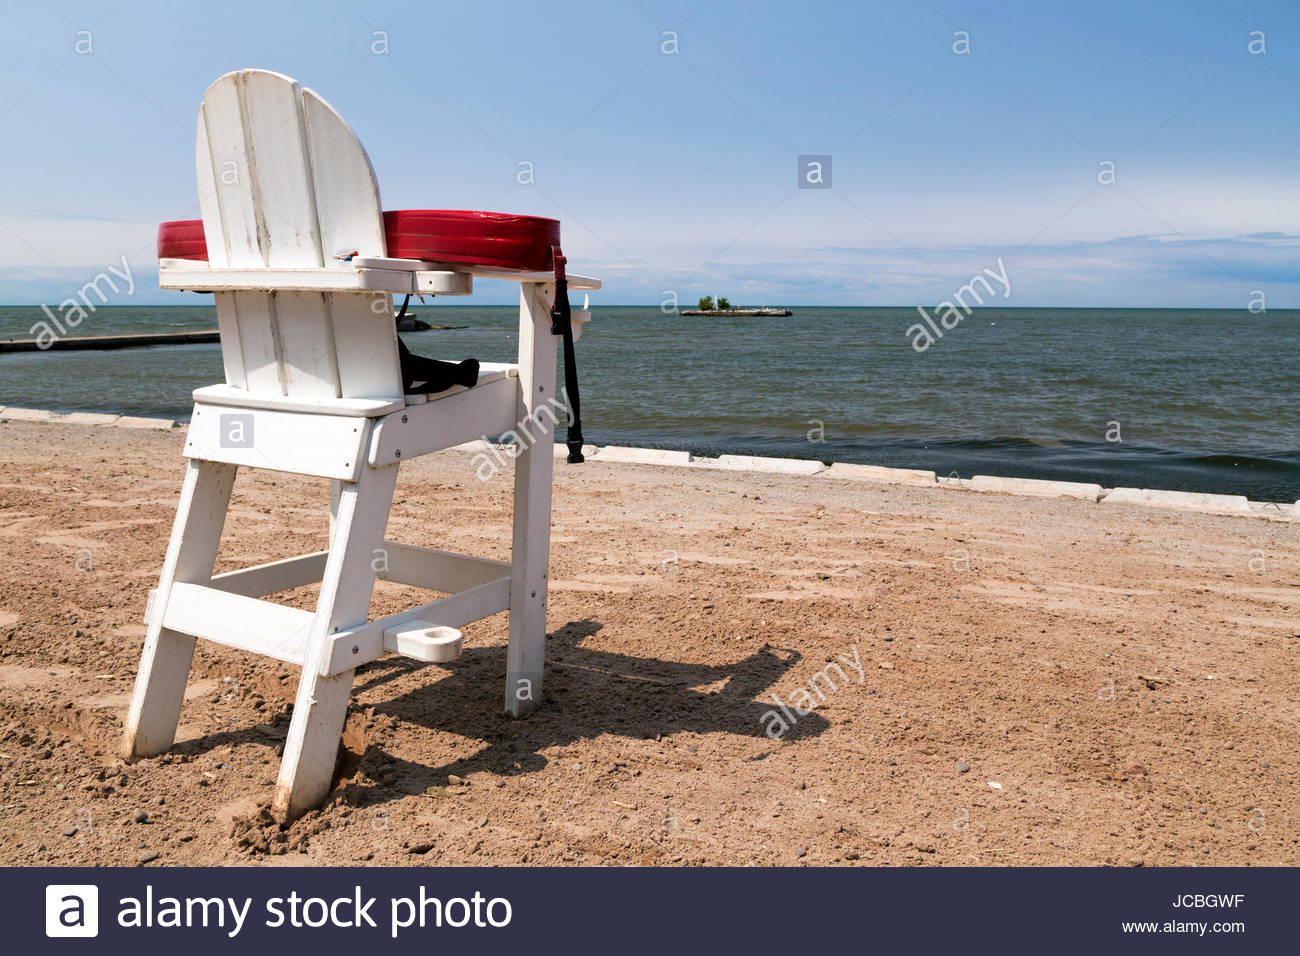 Unmanned White Lifeguard Chair With Floatation Device On An Empty Beach.    Stock Image